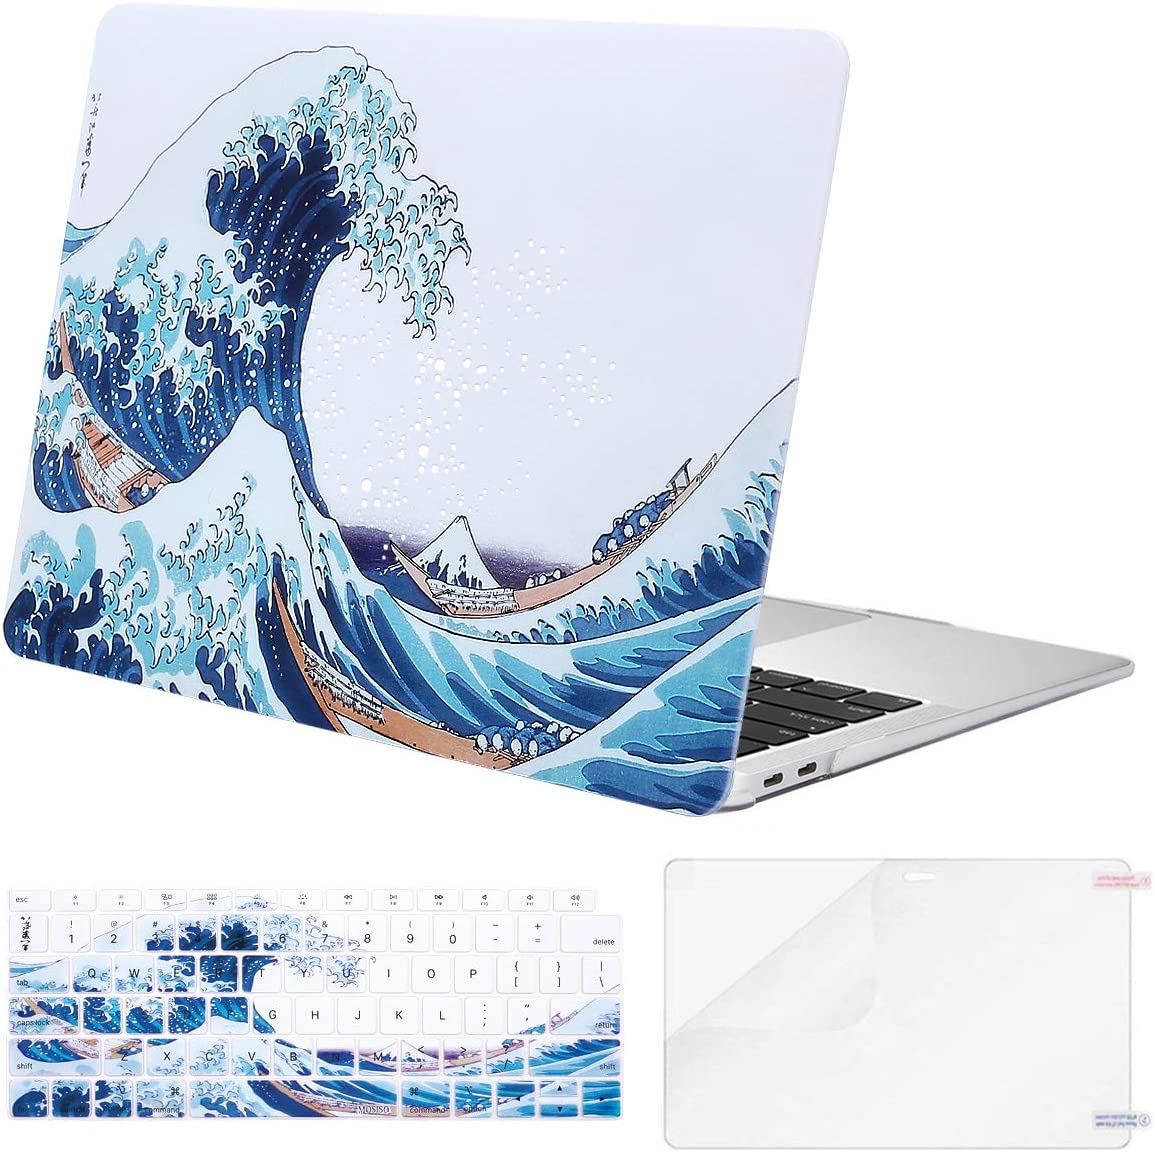 MOSISO MacBook Air 13 inch Case 2020 2019 2018 Release A2179 A1932 Retina Display, Plastic Pattern Hard Shell & Keyboard Cover & Screen Protector Only Compatible with MacBook Air 13, Great Sea Wave